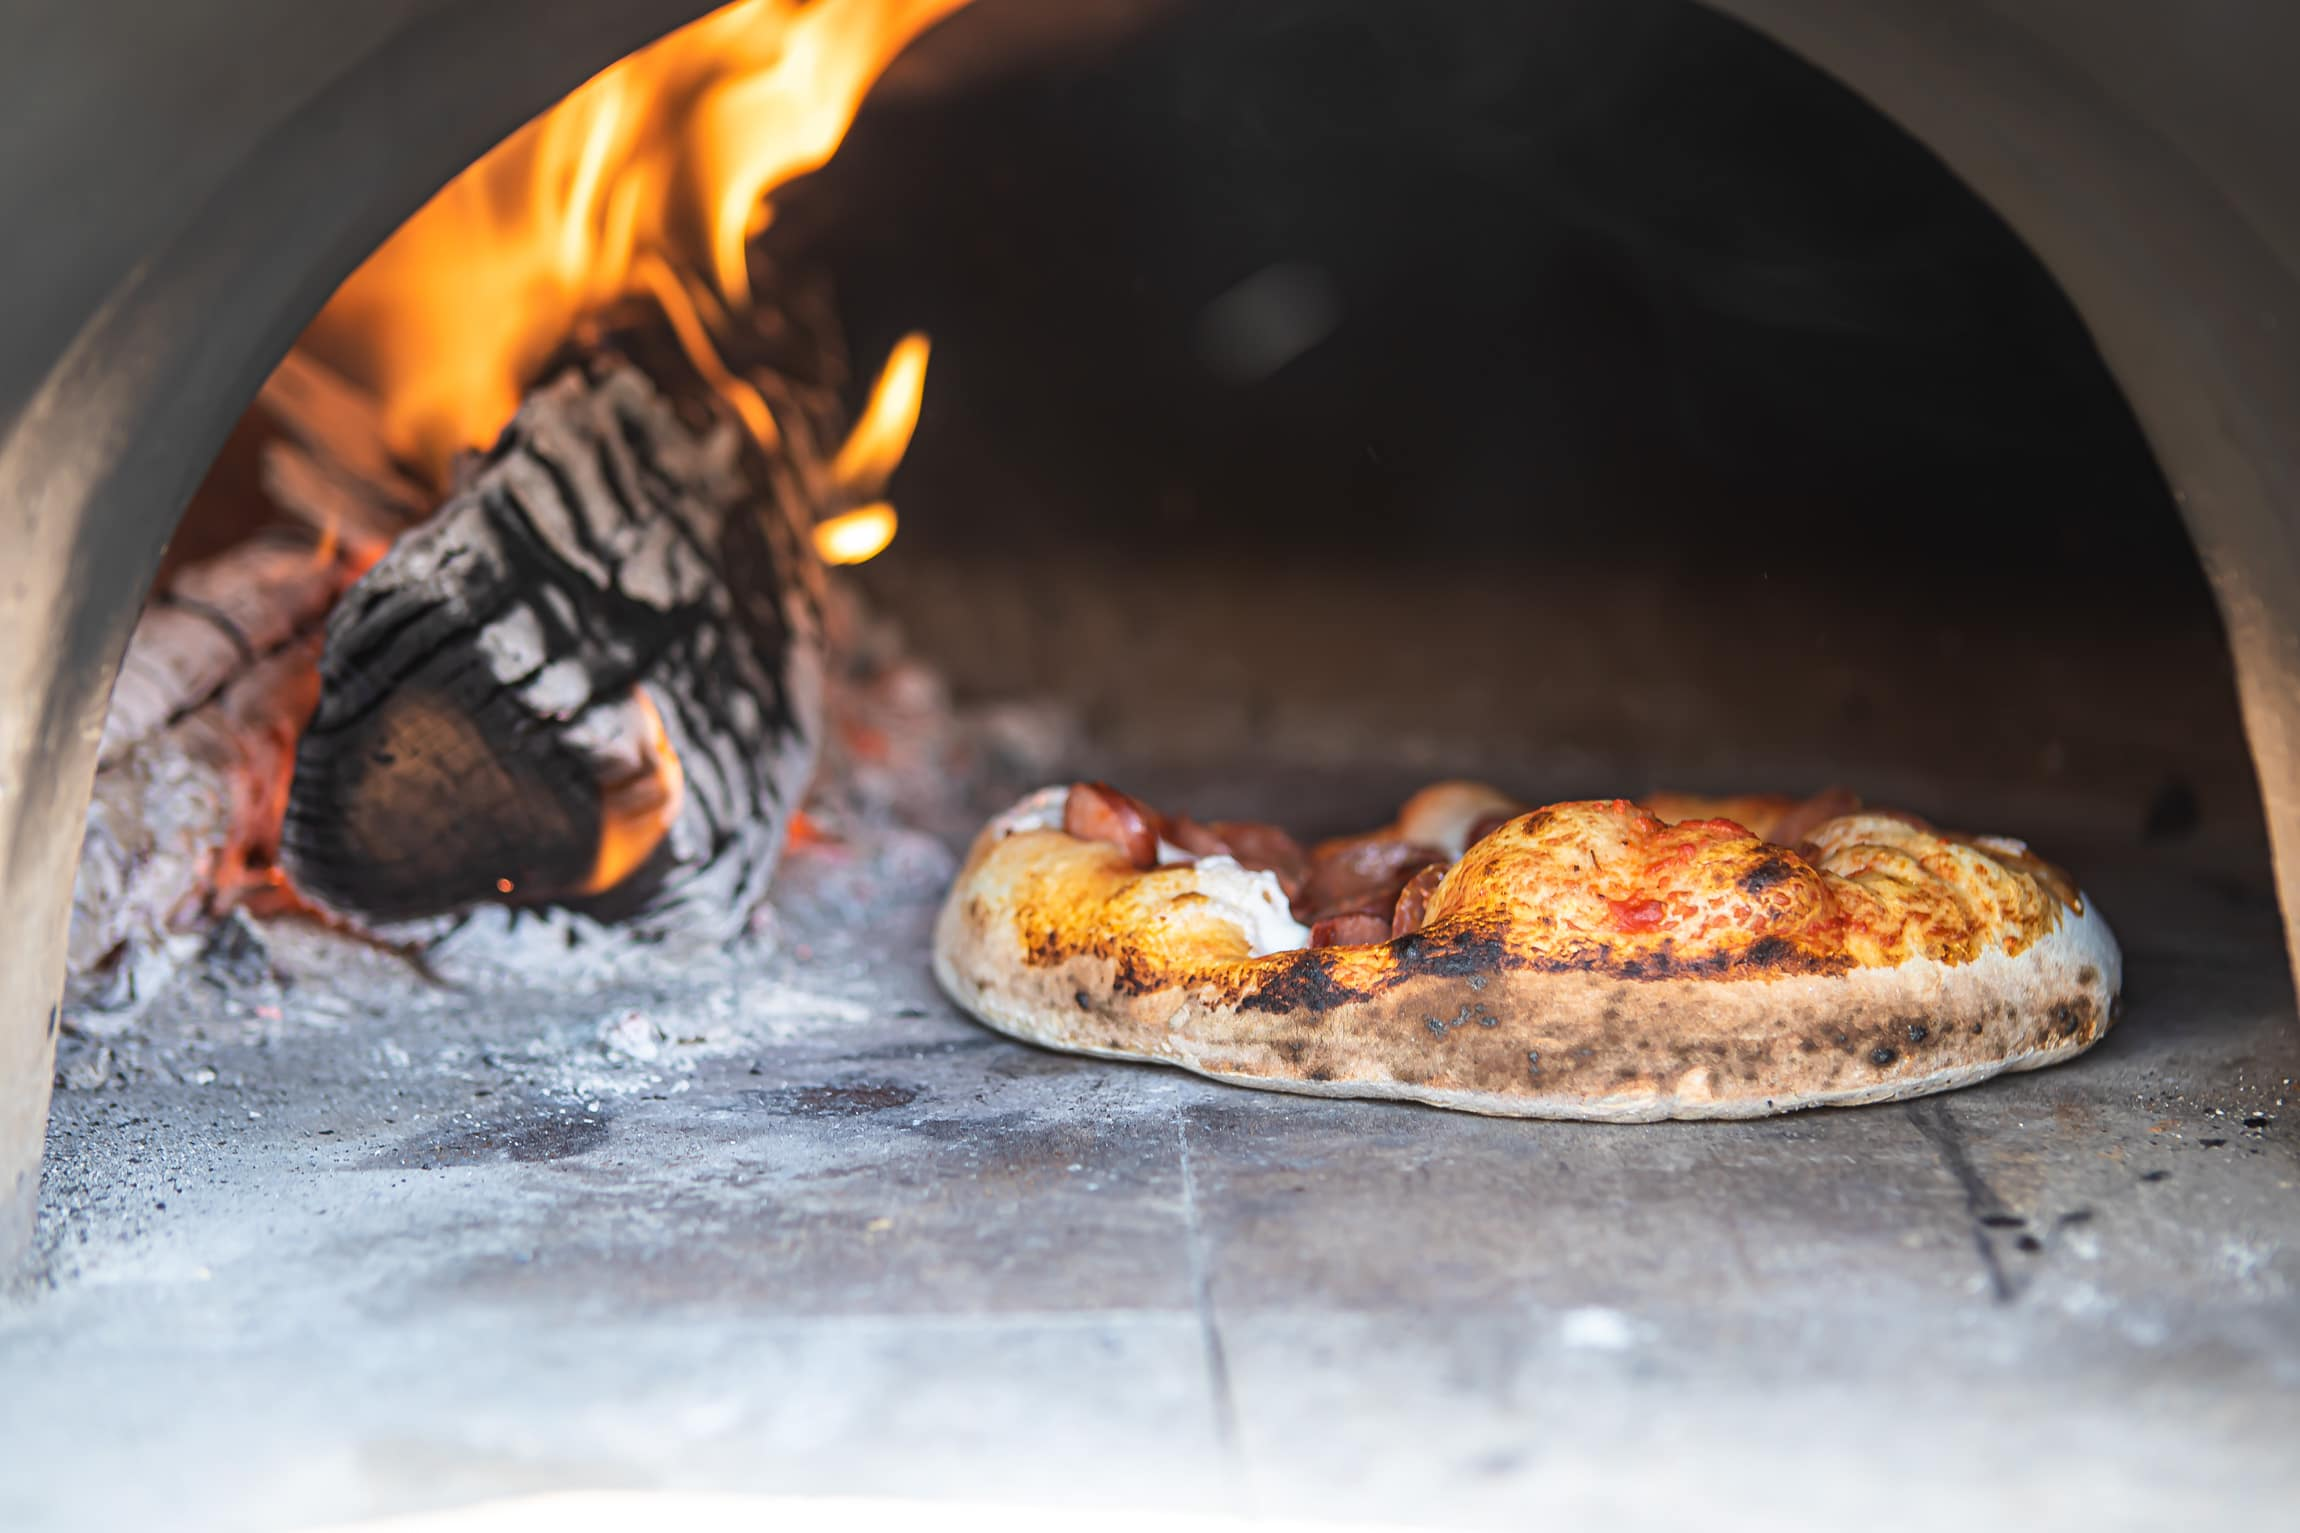 pizza baking in wood fired oven